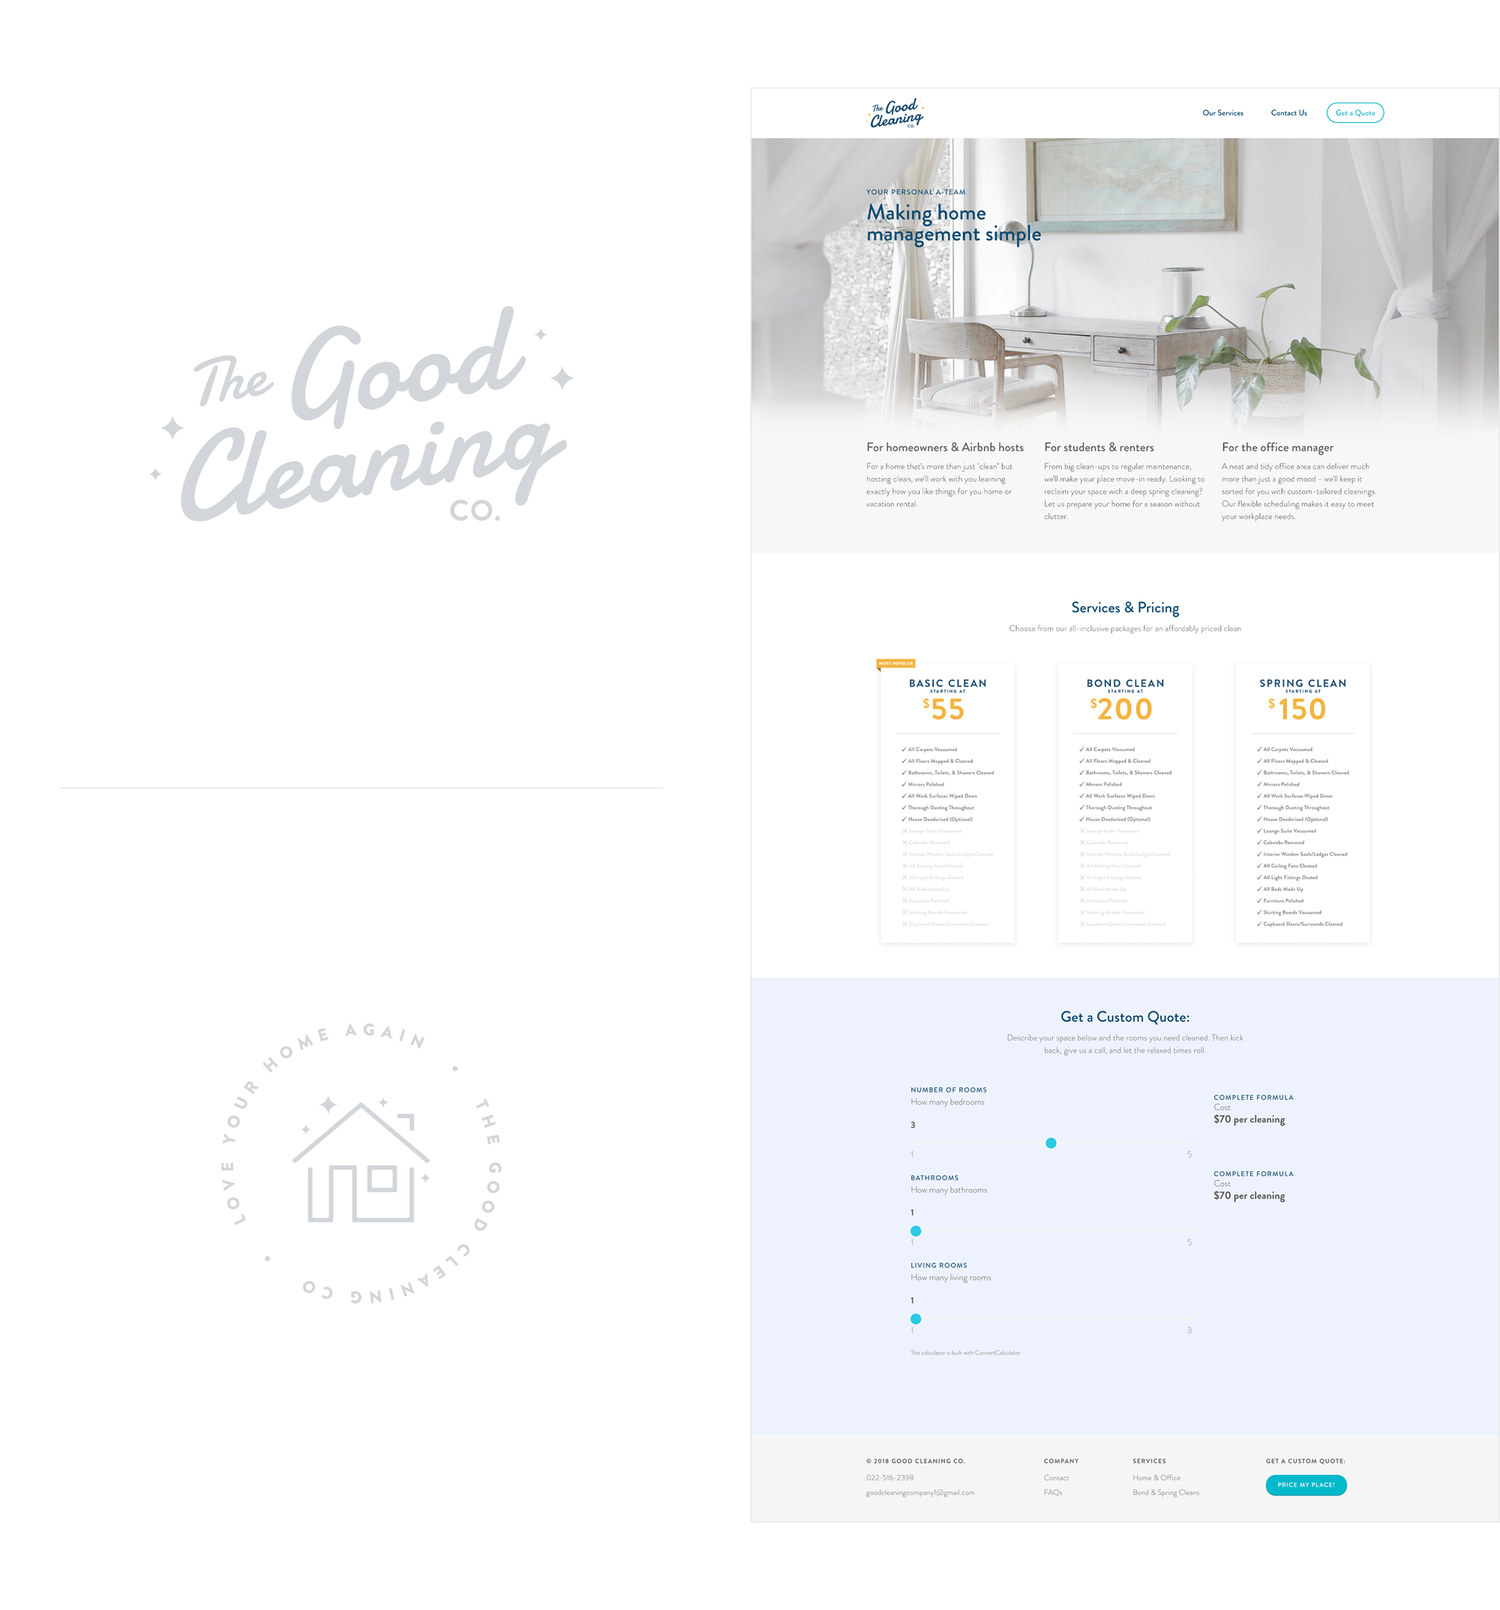 The Good Cleaning Company Brand & Website Design 2